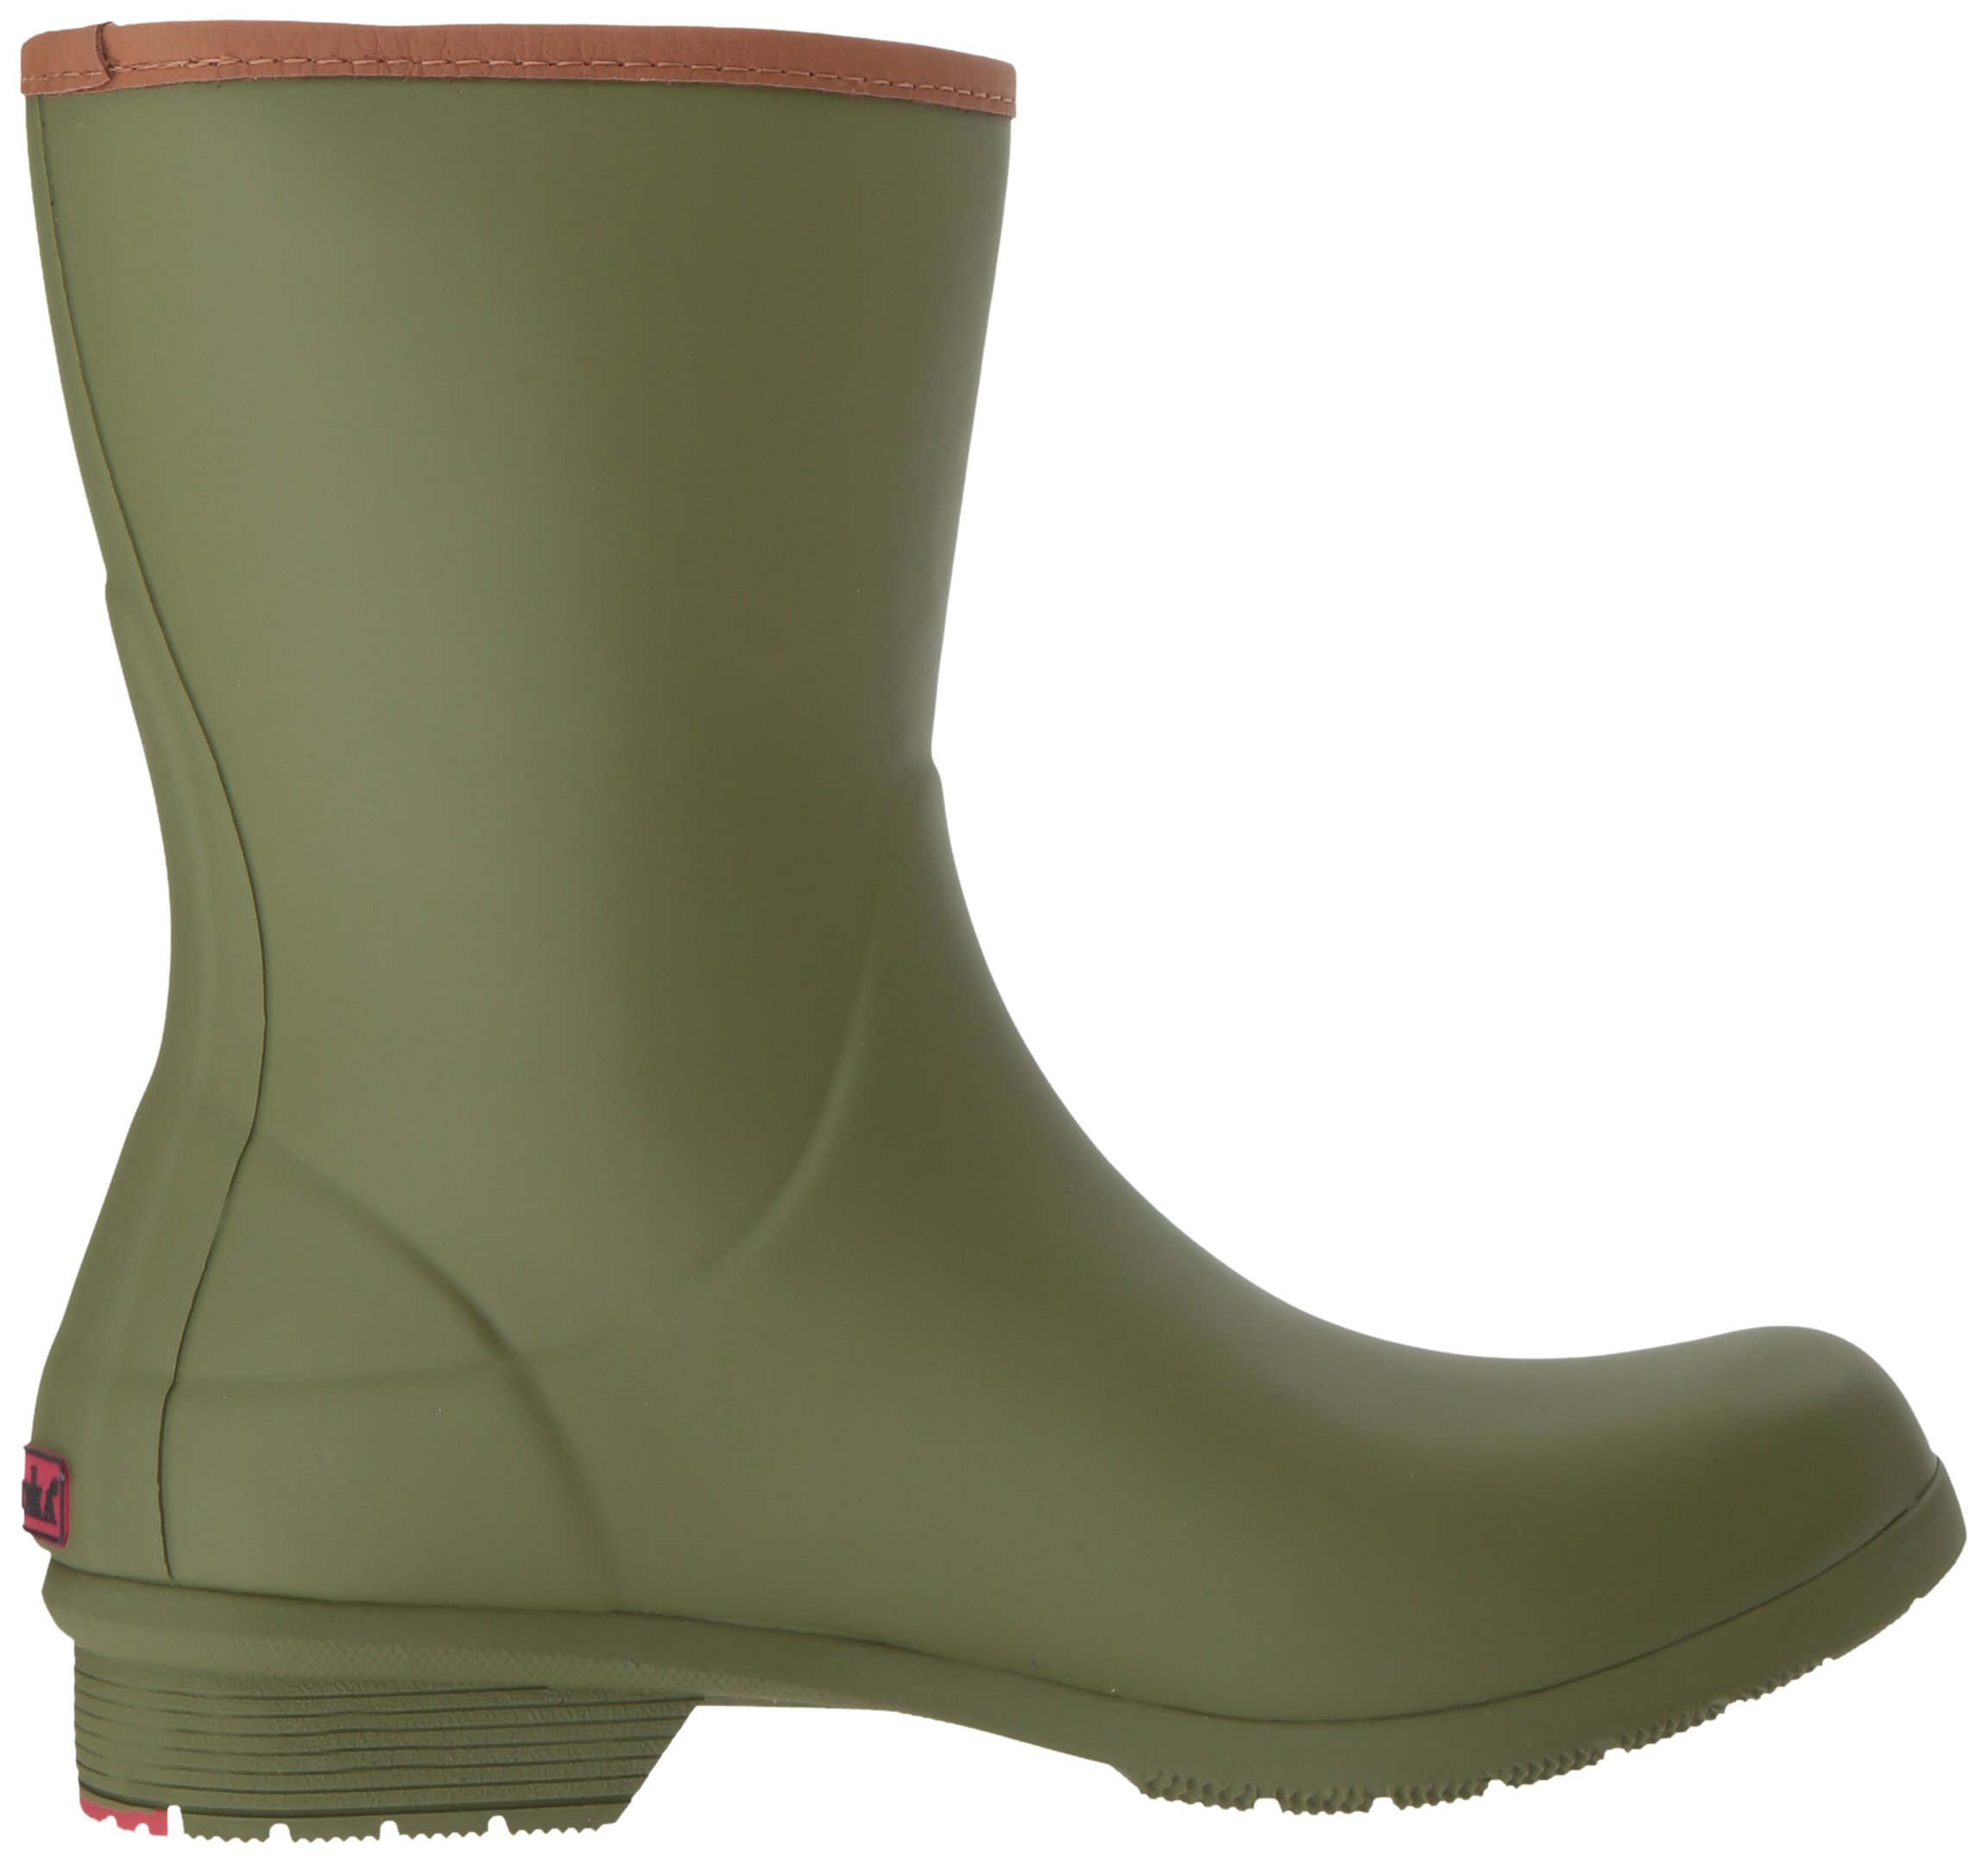 Chooka Women's Mid-Height Memory Foam Rain Boot, Olive, 9 M US by Chooka (Image #7)